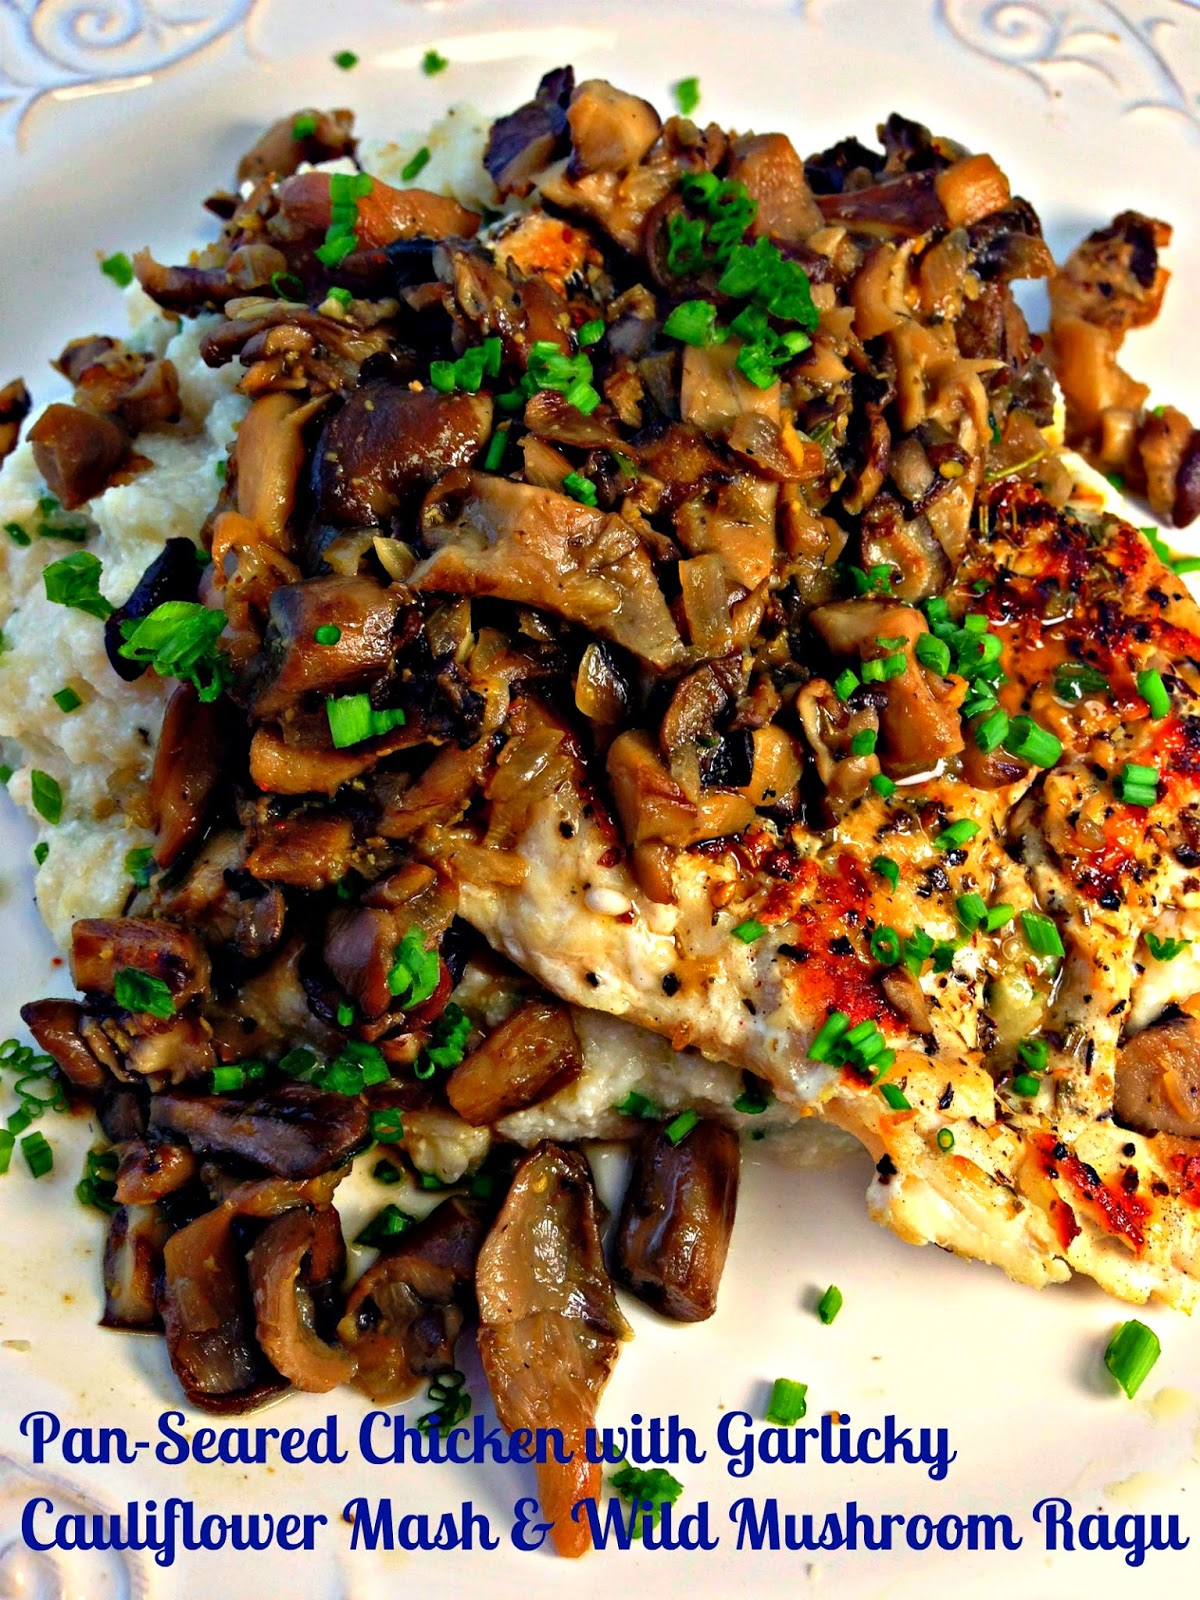 Healthy Pan-Seared Chicken with Garlicky Cauliflower Mash & Wild Mushroom Ragu